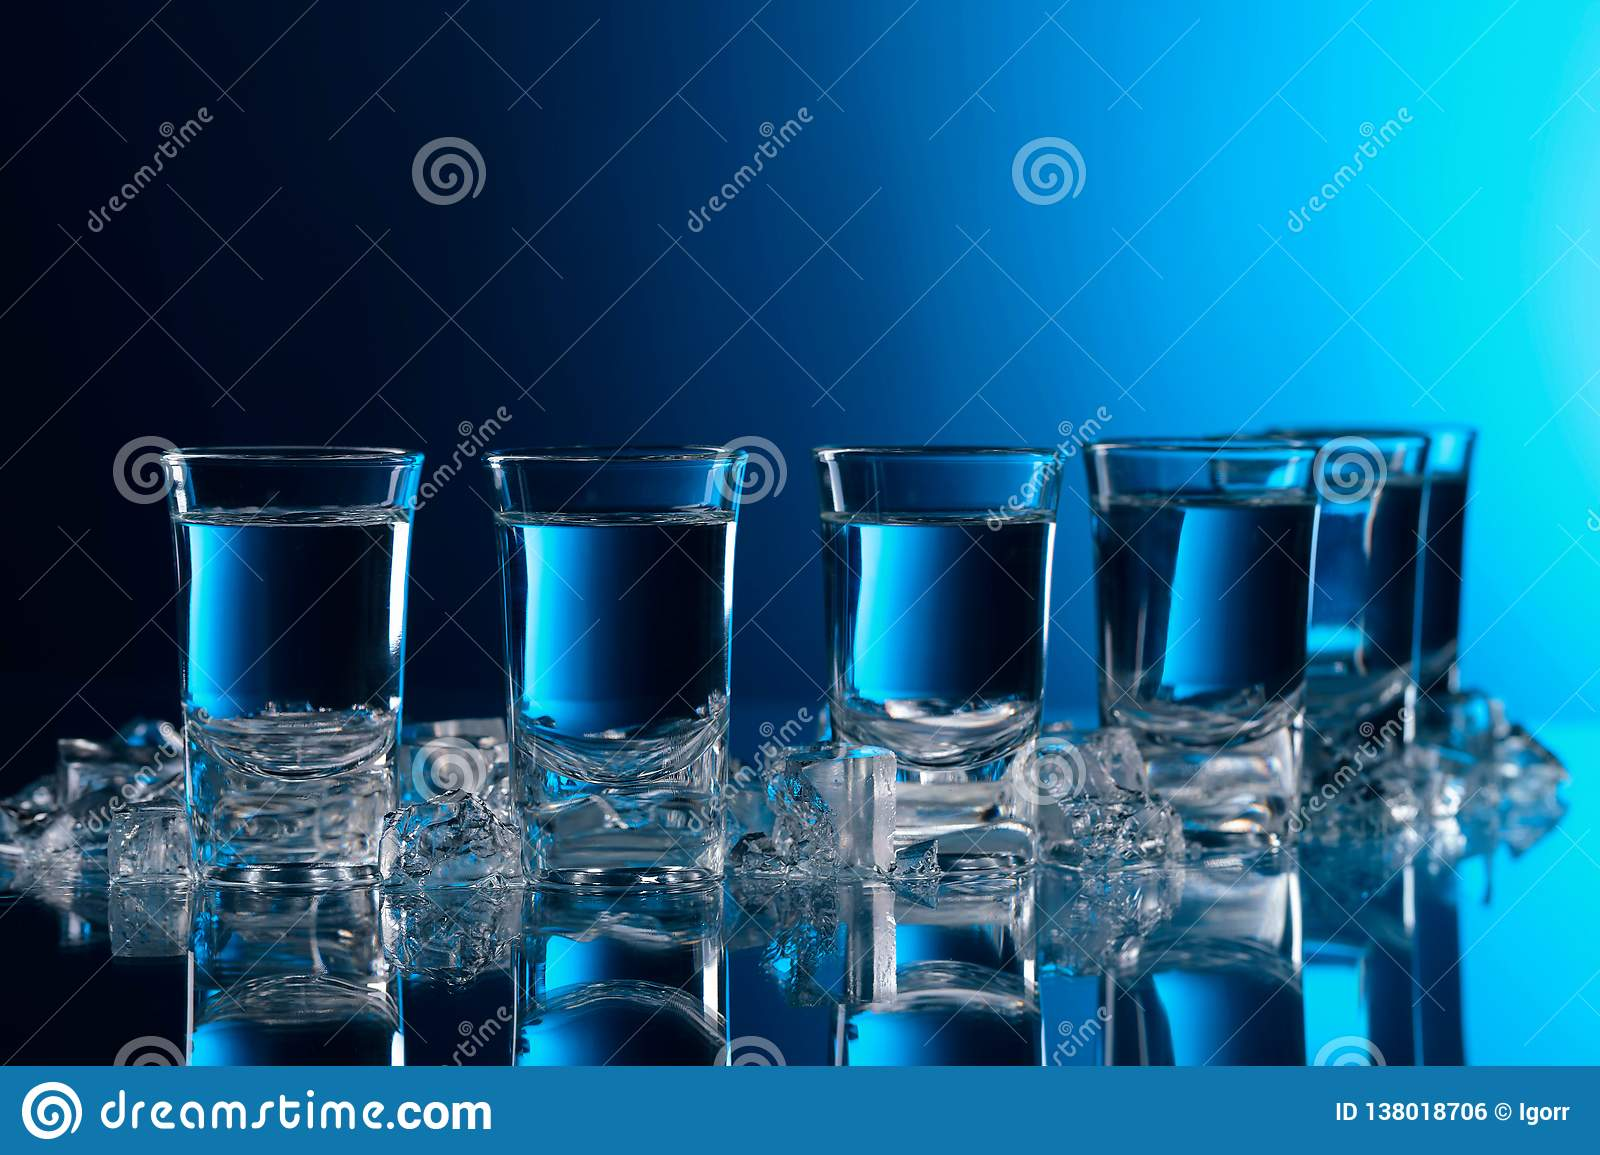 Glasses of vodka with ice on a glass table